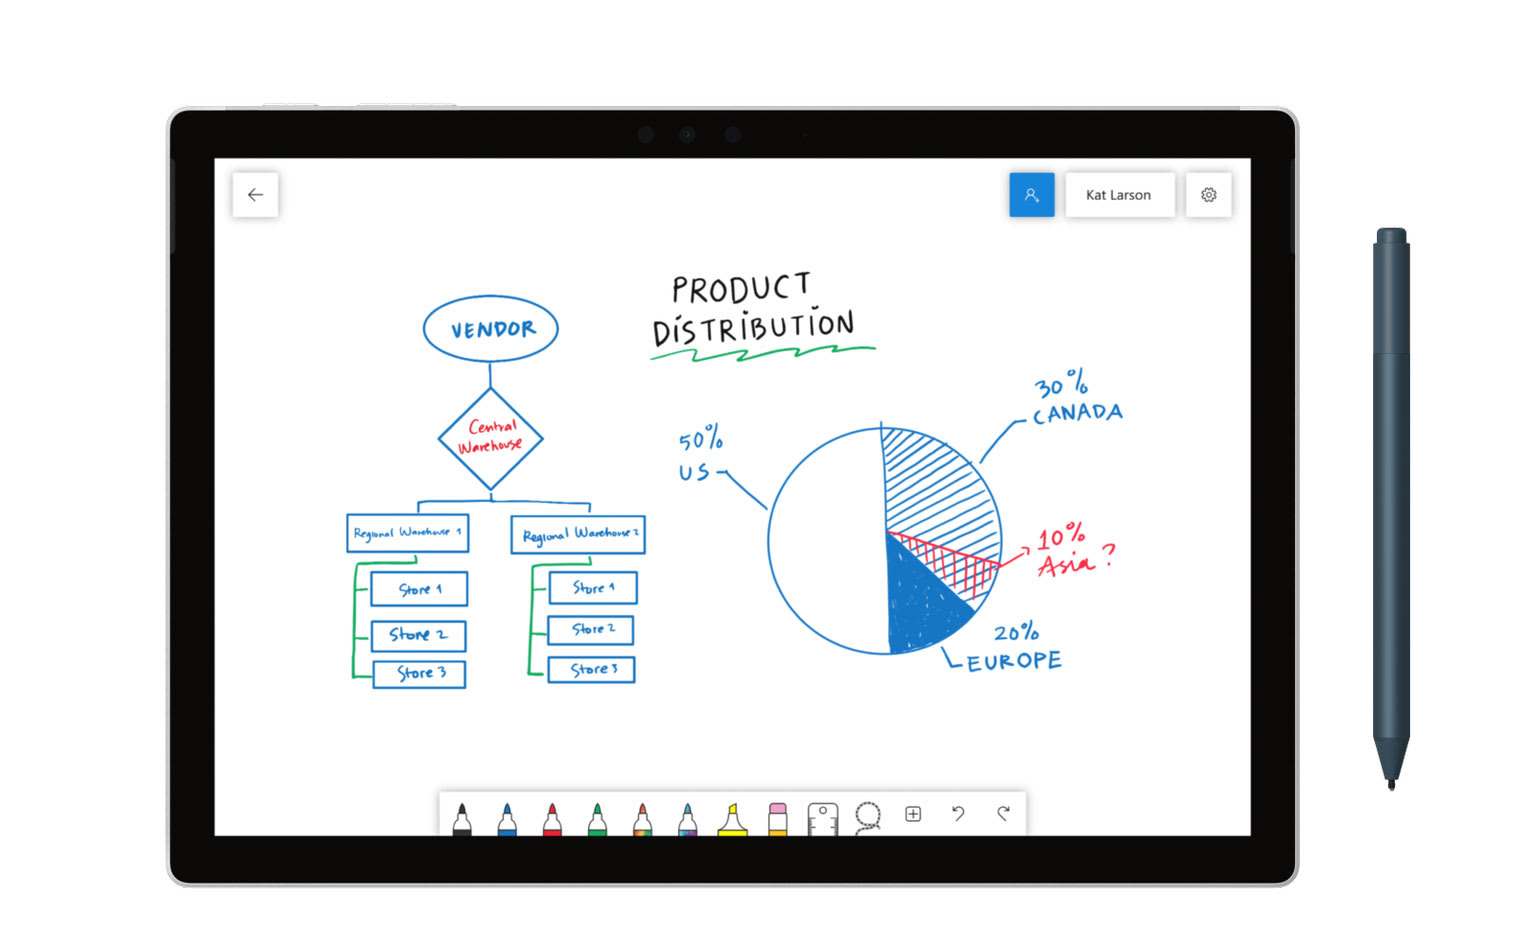 Microsoft's collaborative Whiteboard app is now available